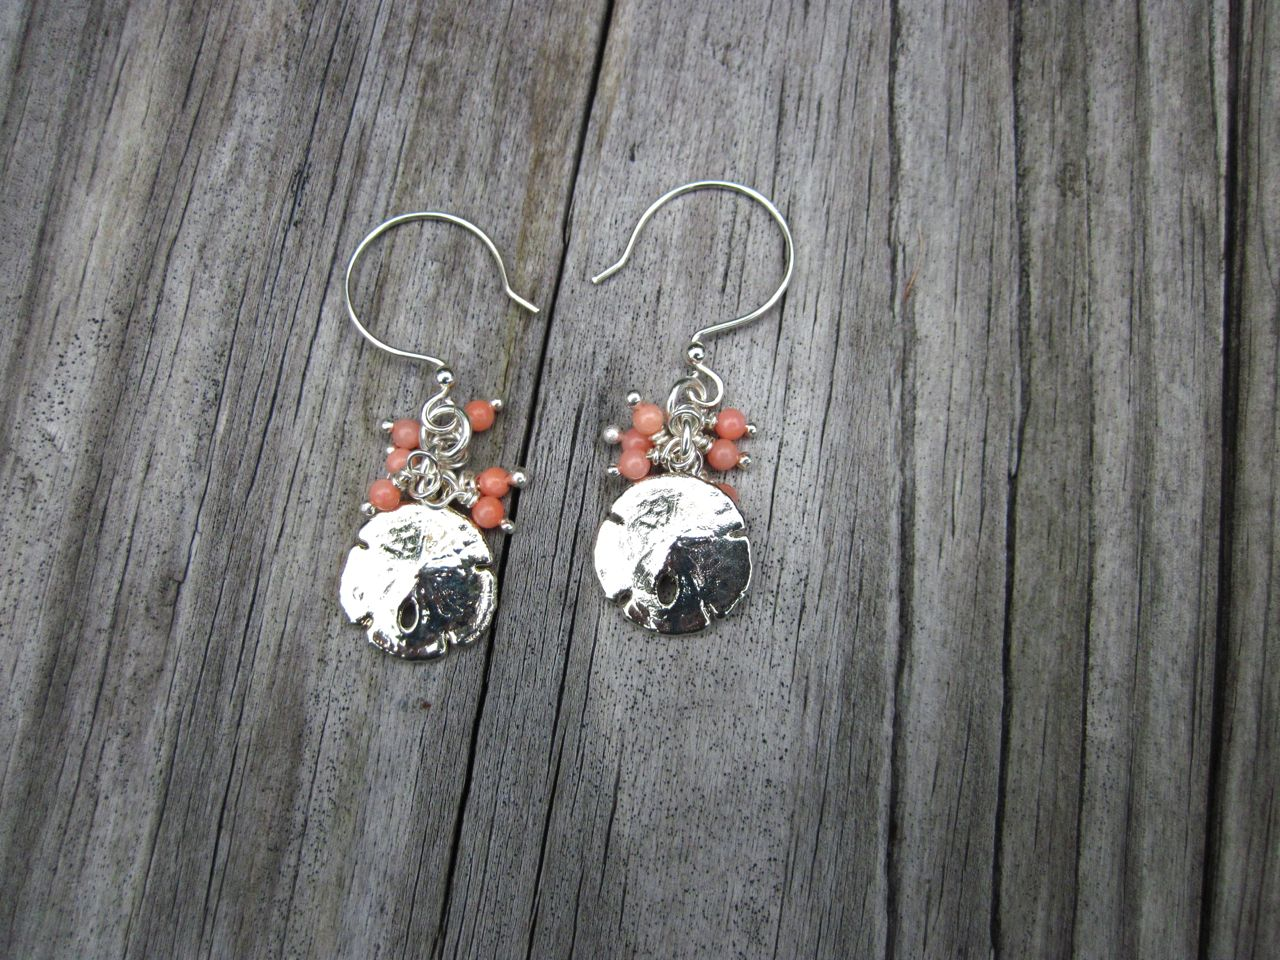 Sand dollar earrings in silver